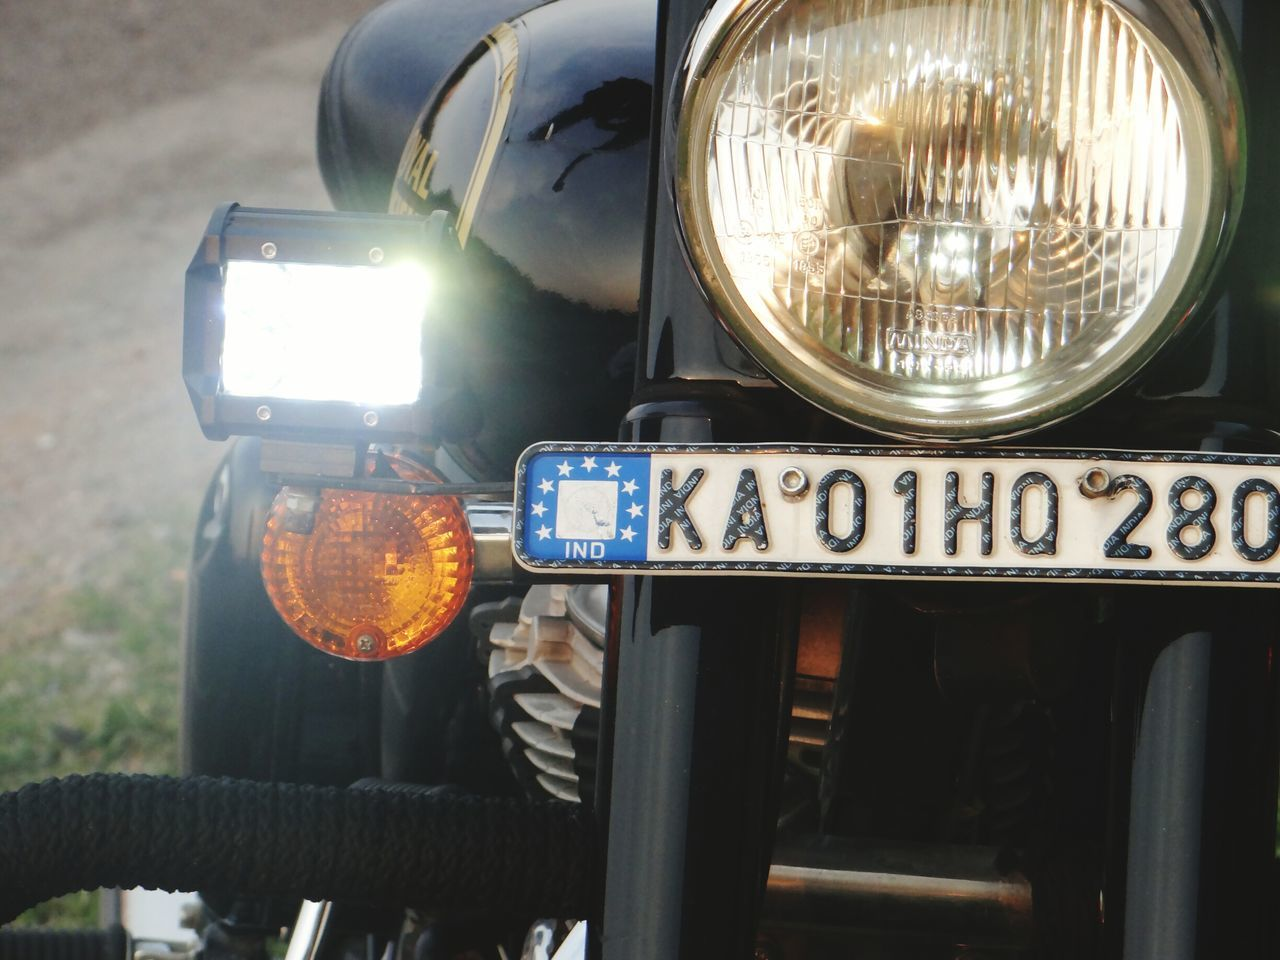 headlight, transportation, outdoors, text, land vehicle, day, no people, mode of transport, close-up, focus on foreground, illuminated